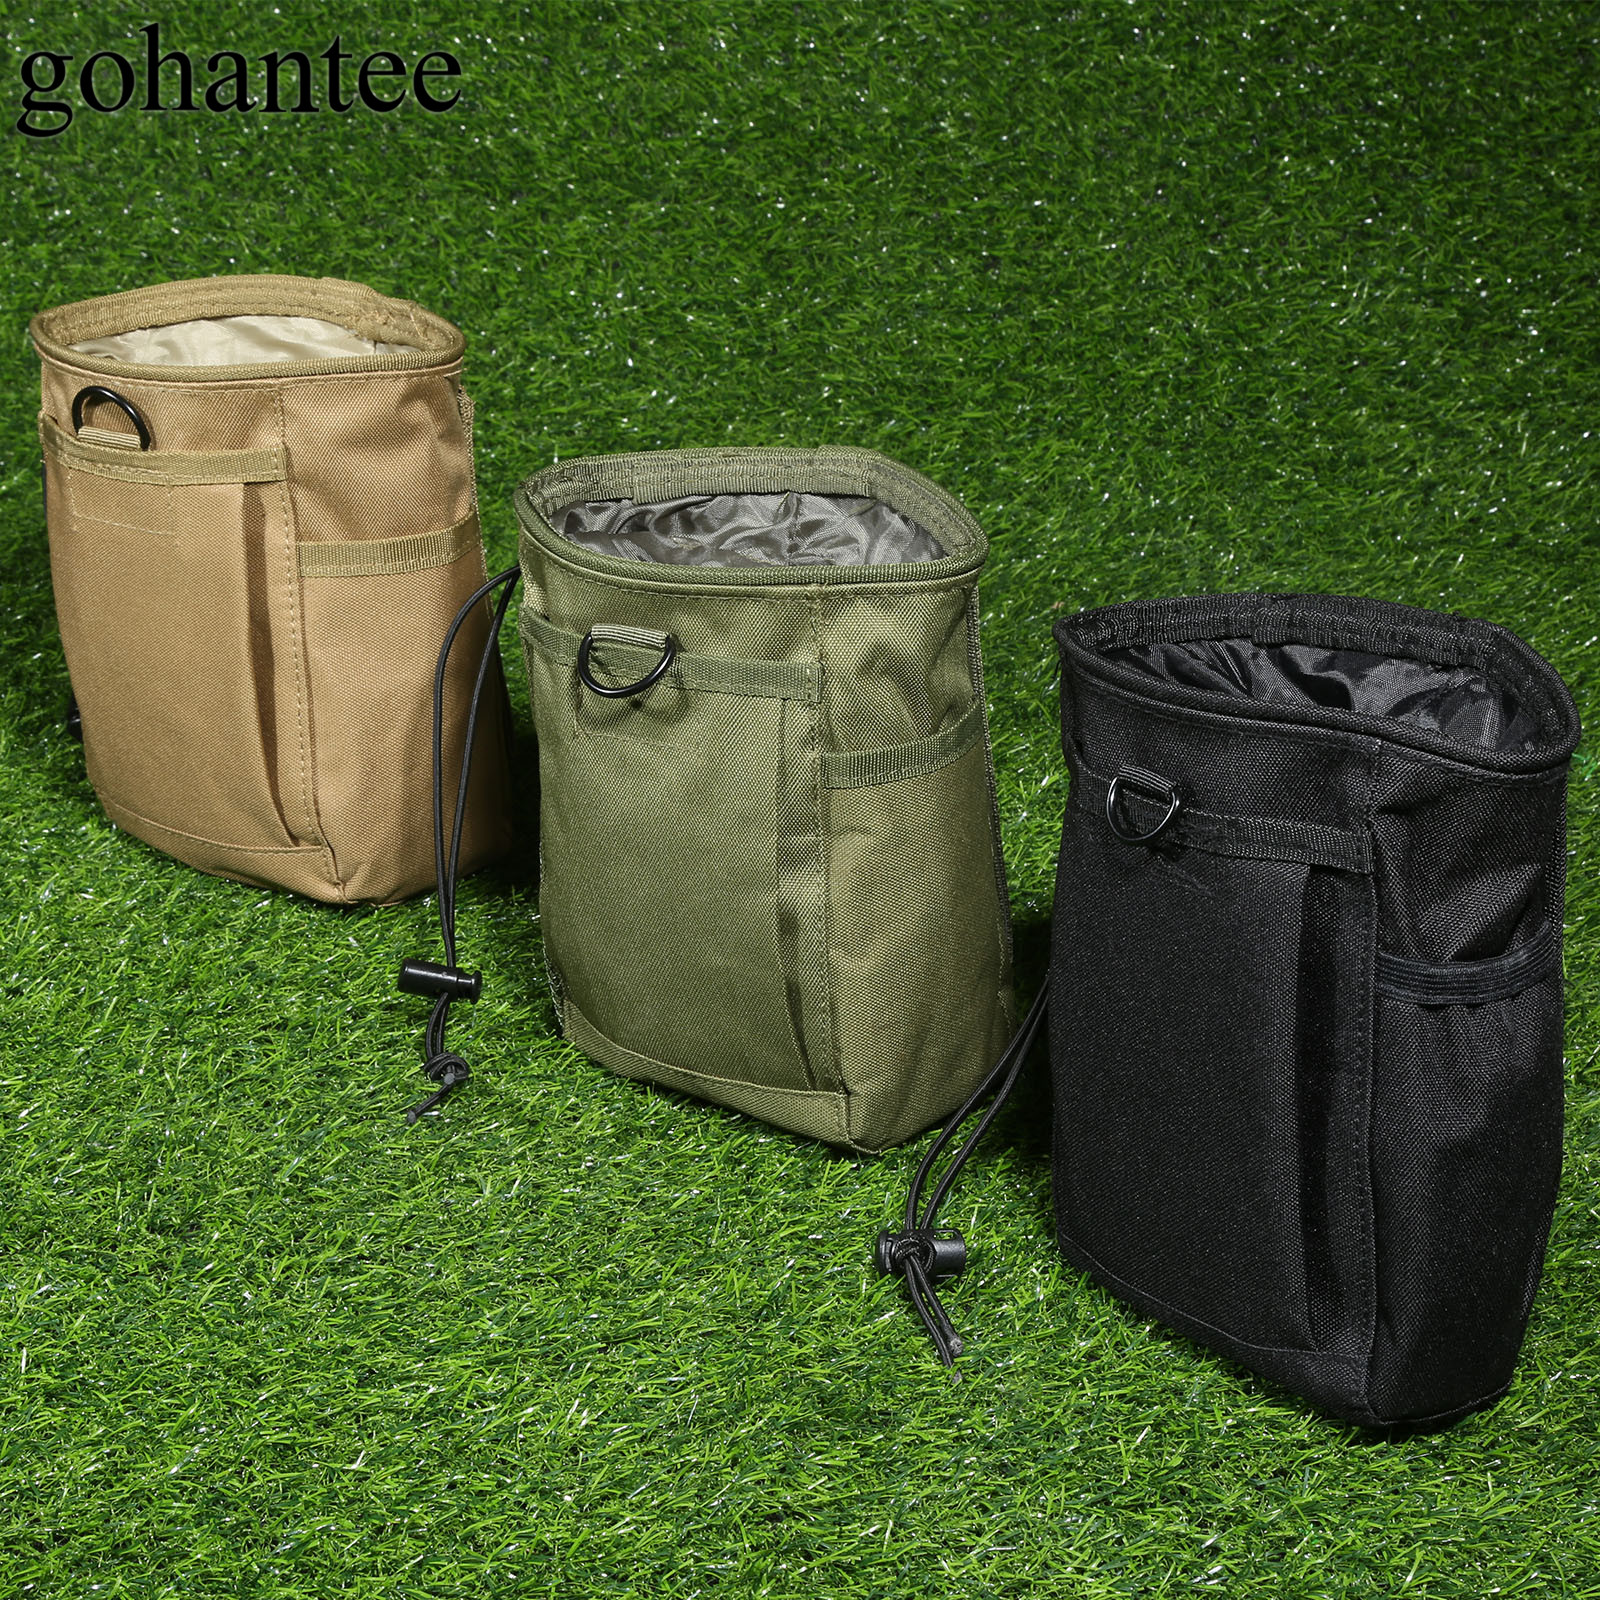 gohantee Tactical MOLLE Pouch Military Waist Bag Holster Hunting Utility Magazine Pouch Travel Pouch Medic Kit Package 20x14x8cm